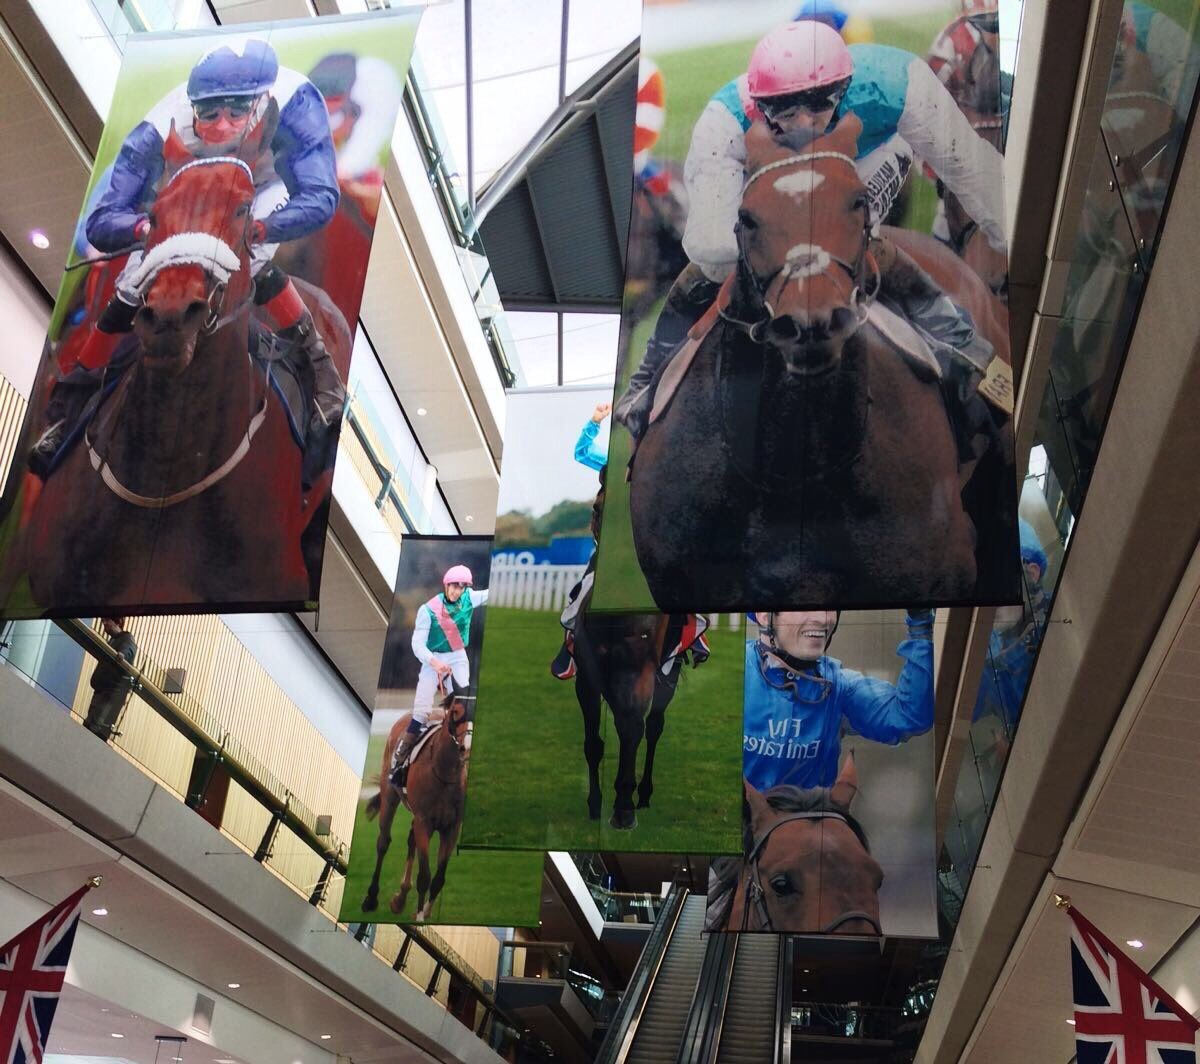 Melted at Royal Ascot, lightning at Epsom, drenched at Goodwood & now blown away at Ascot. But can't wait! The Big Finale live on ITV at 1pm